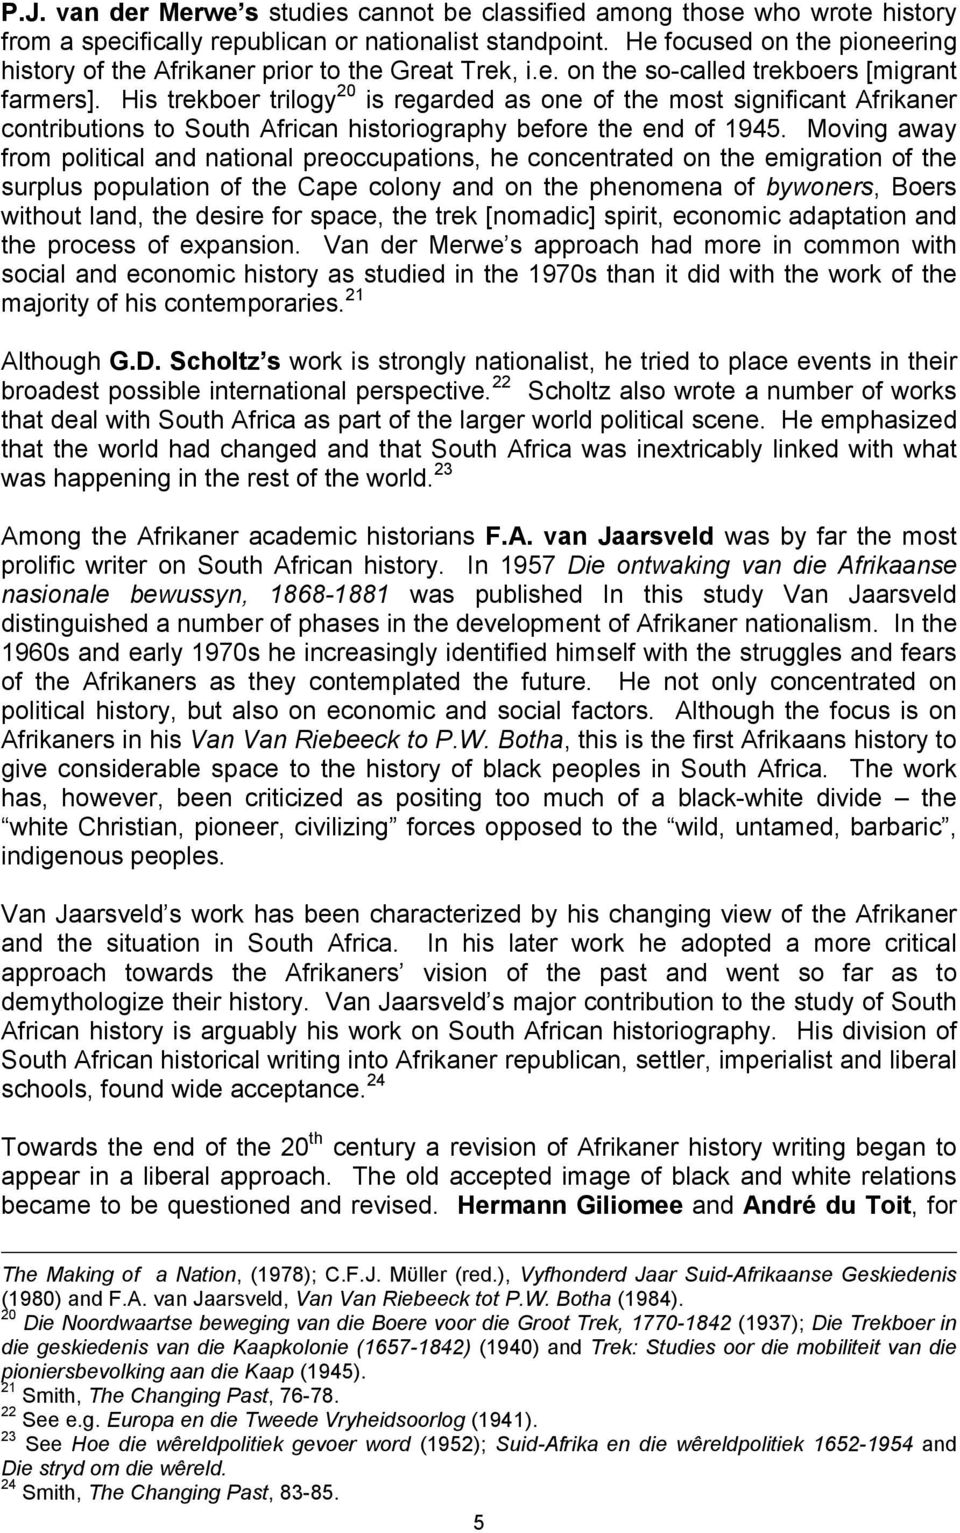 His trekboer trilogy 20 is regarded as one of the most significant Afrikaner contributions to South African historiography before the end of 1945.